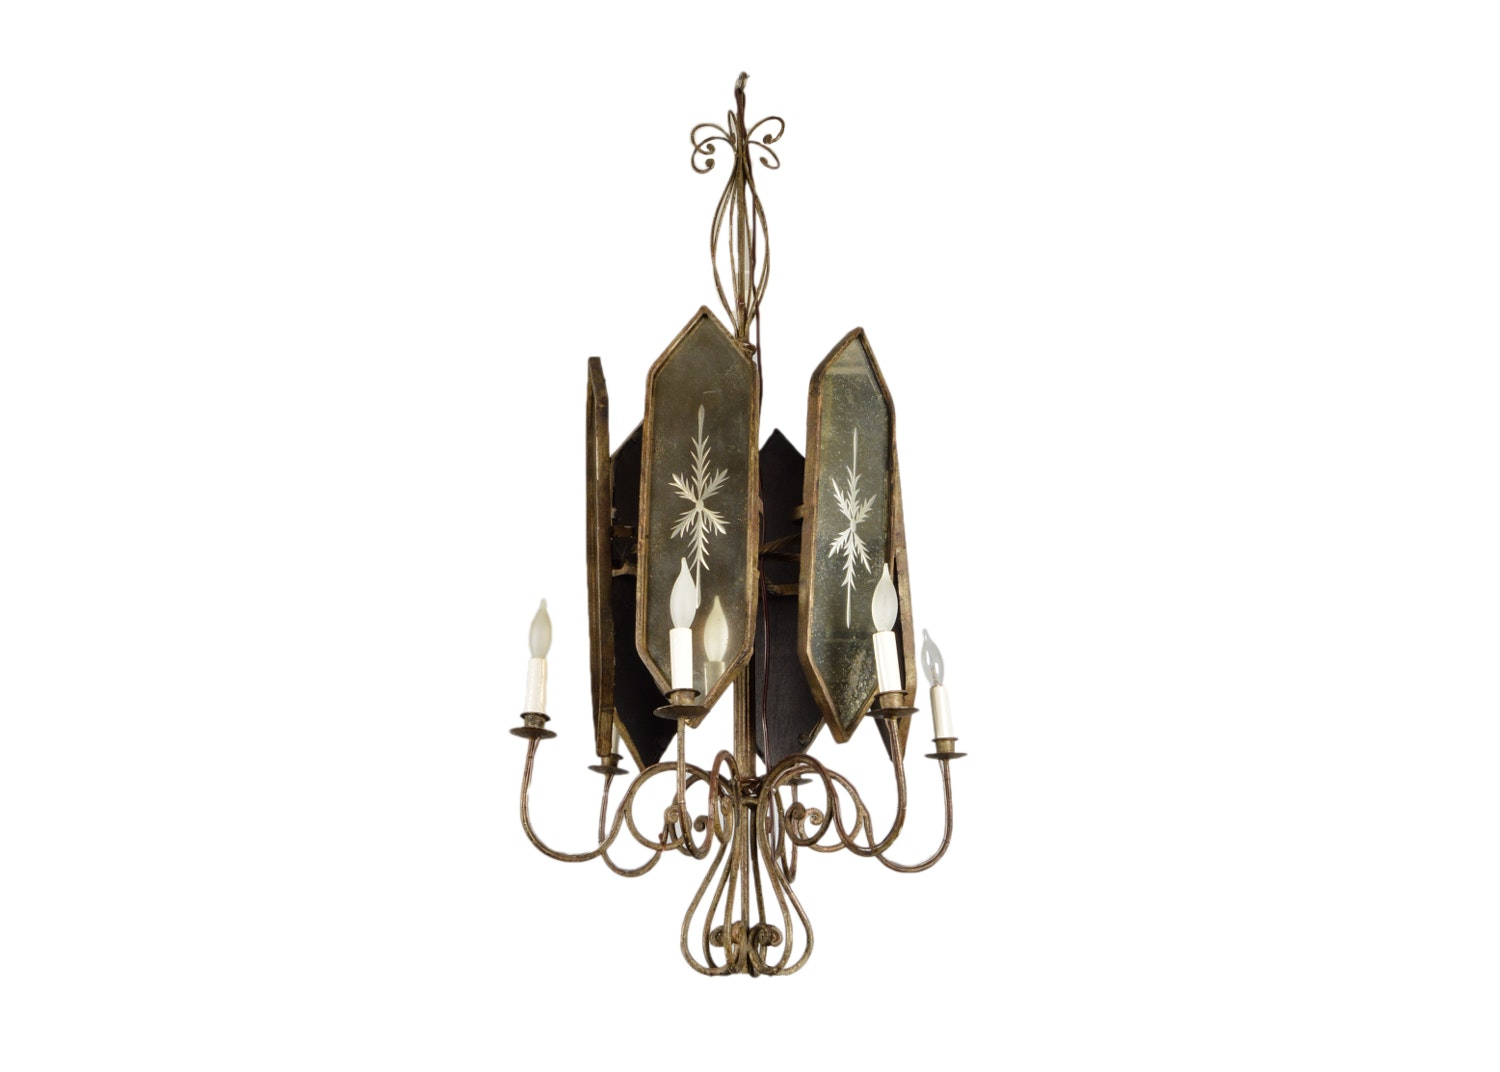 Etched Mirrored Panel and Wrought Metal Chandelier